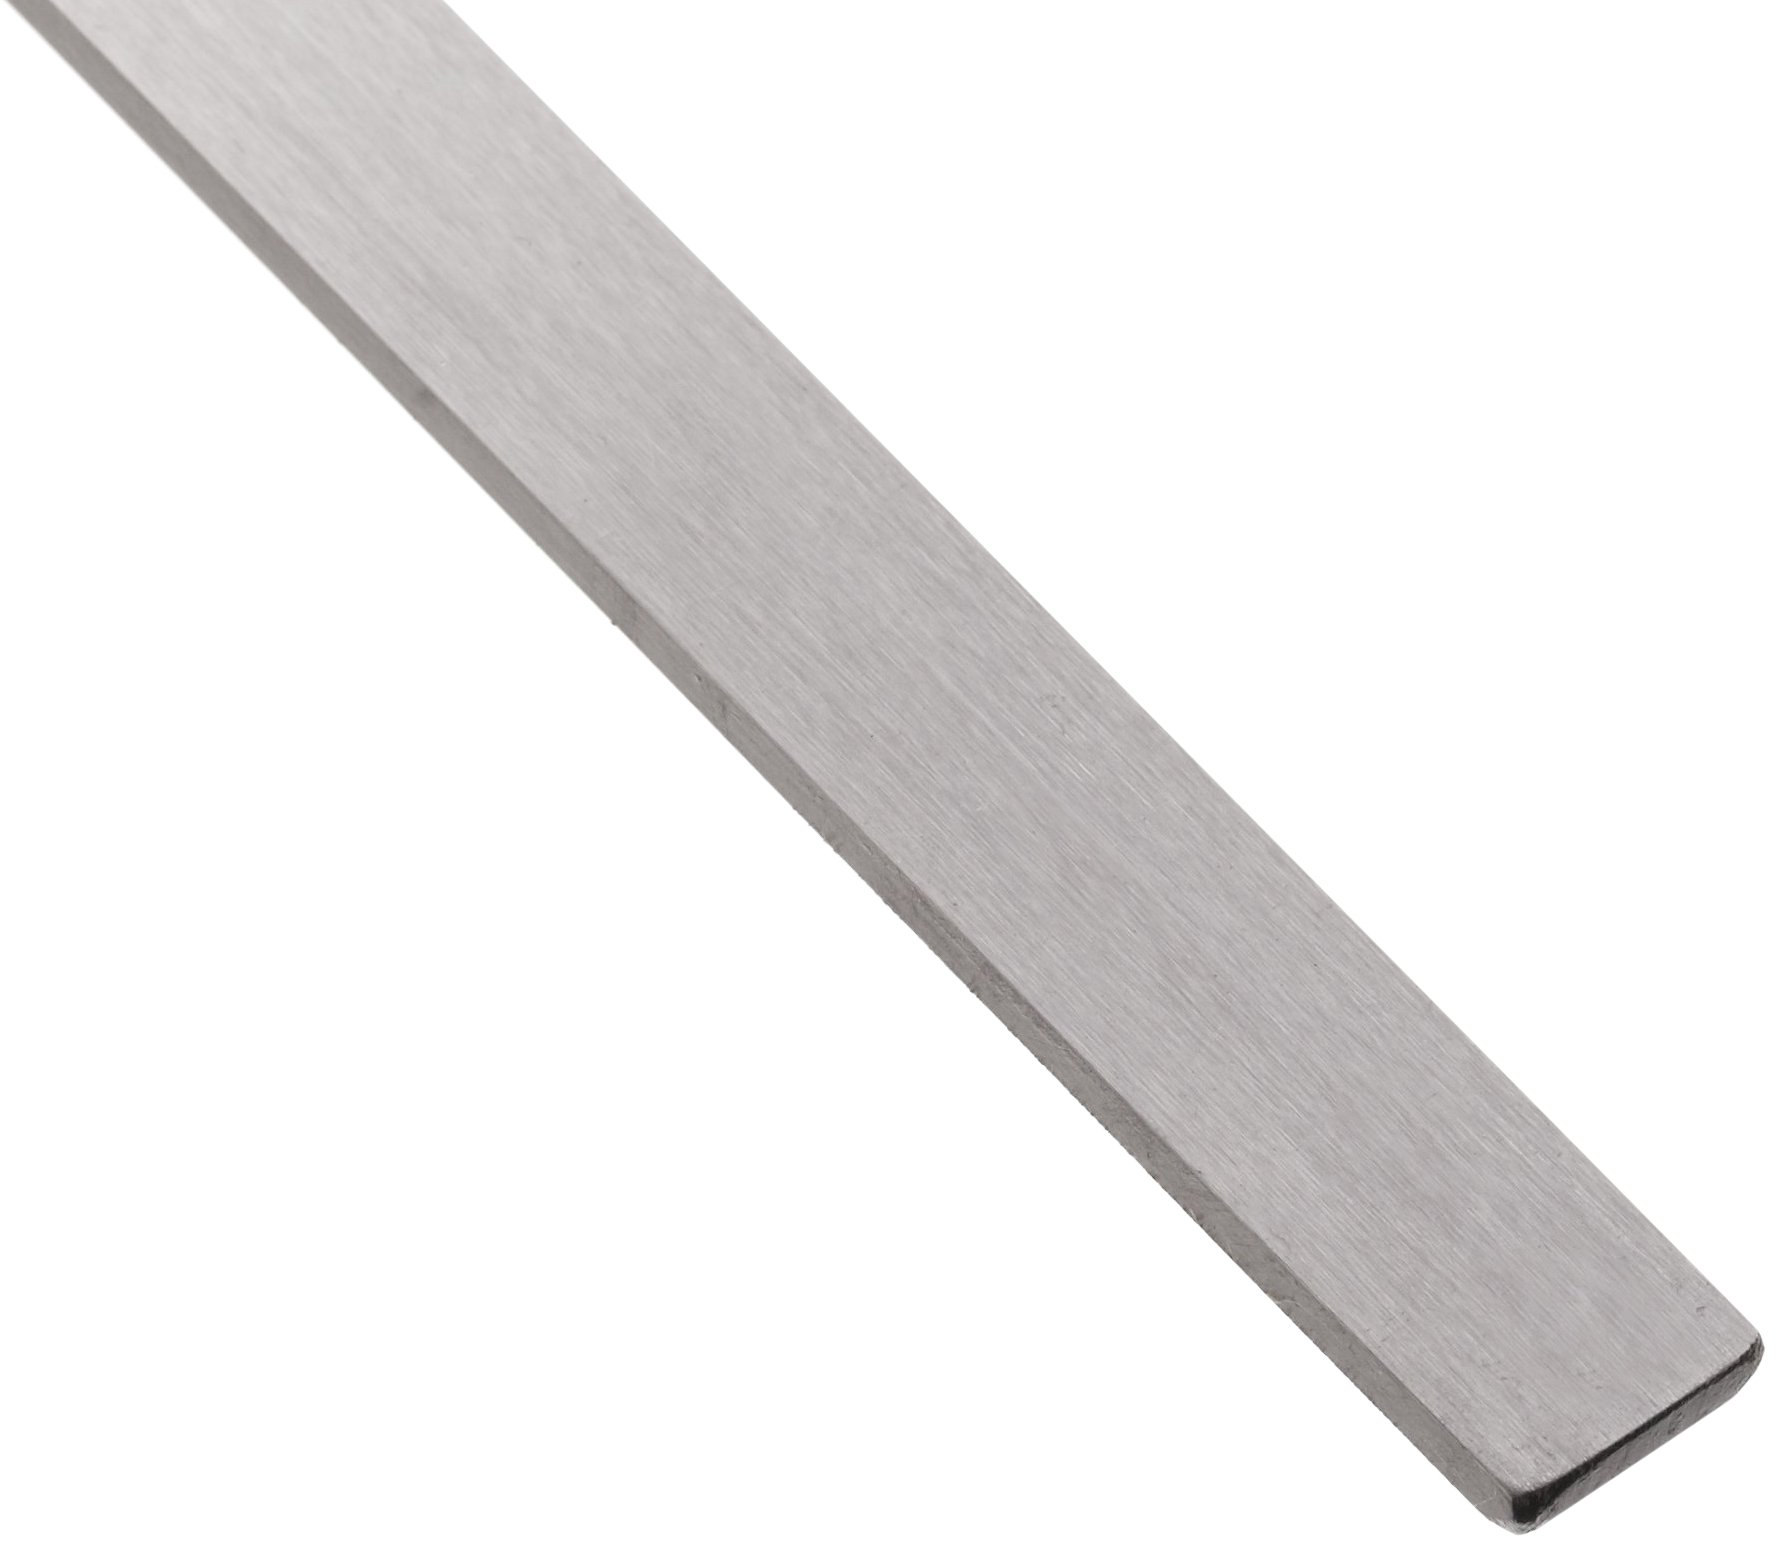 O1 Tool Steel Rectangular Bar, Precision Ground, ASTM A681/SAE J437, 1/16'' Thickness, 1/2'' Width, 18'' Length by Small Parts